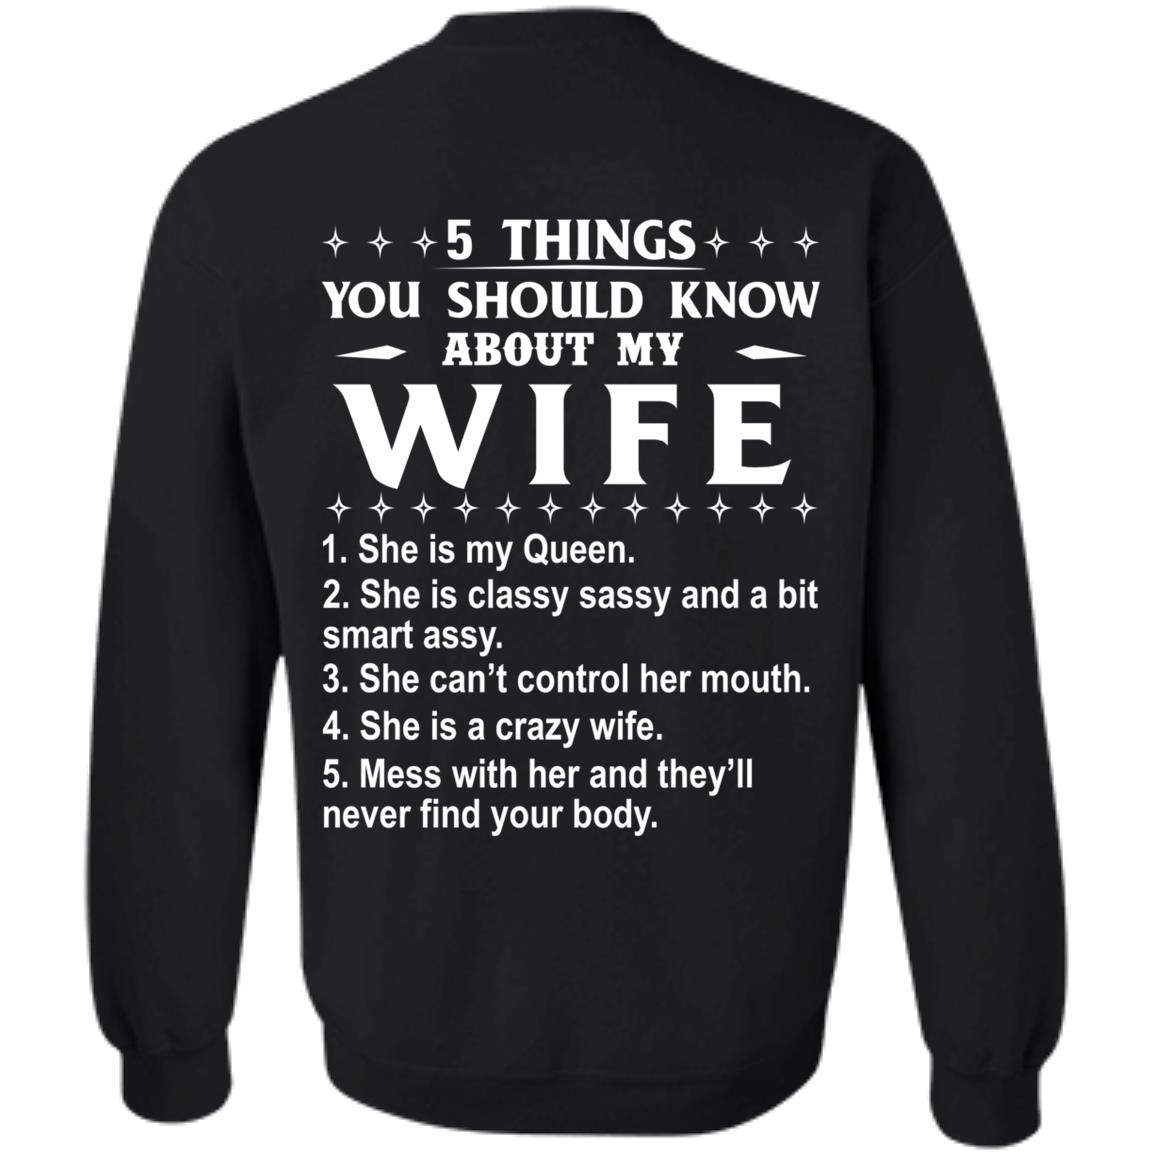 5 Things You Should Know About My wife Shirt & Sweatshirt - image 410